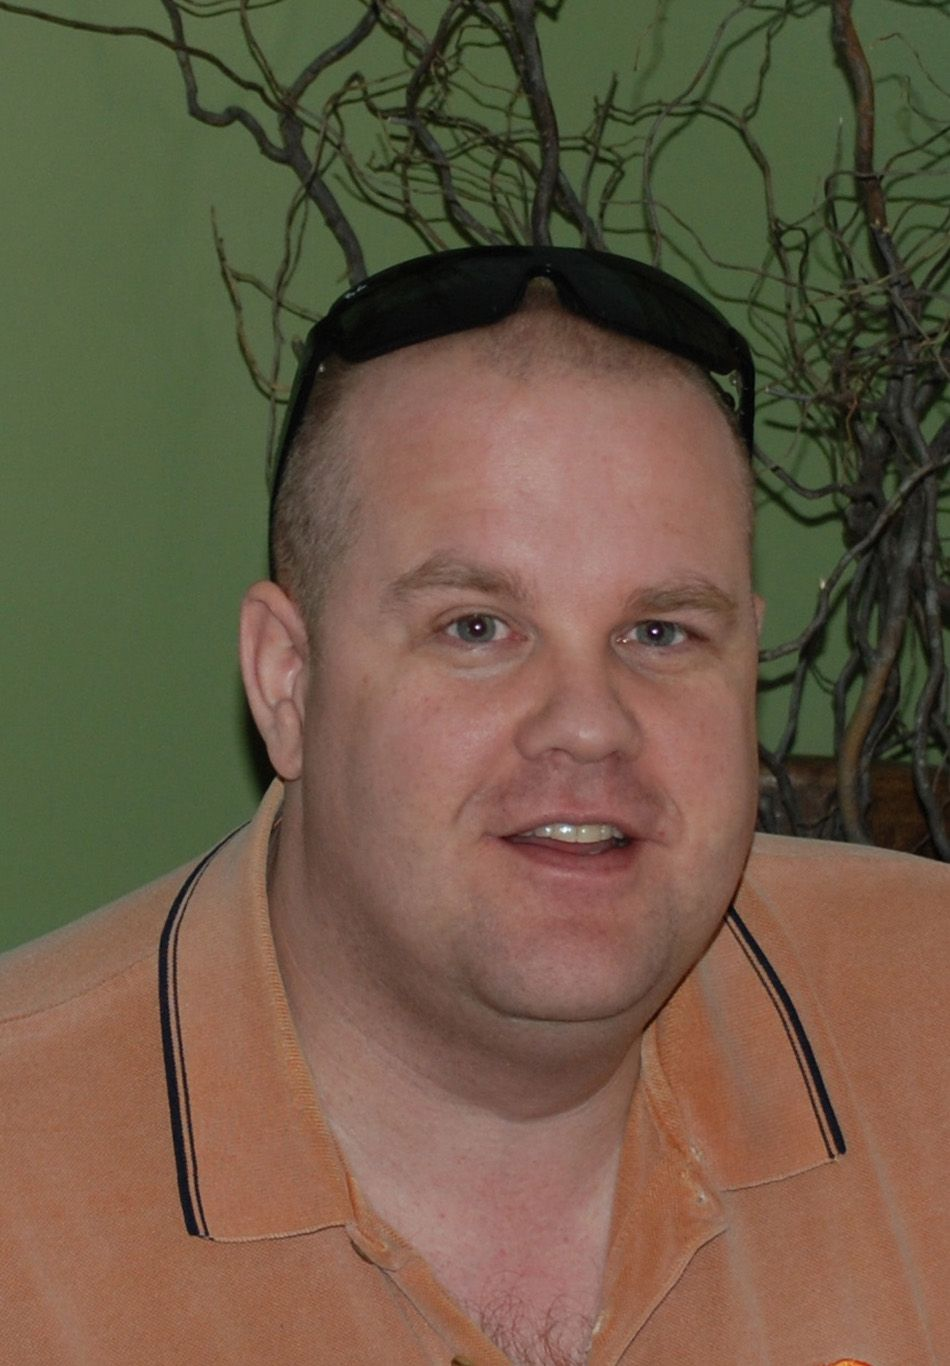 Ryan Hoyme is a massage therapist with a passion to educate. He owns  MassageNerd.